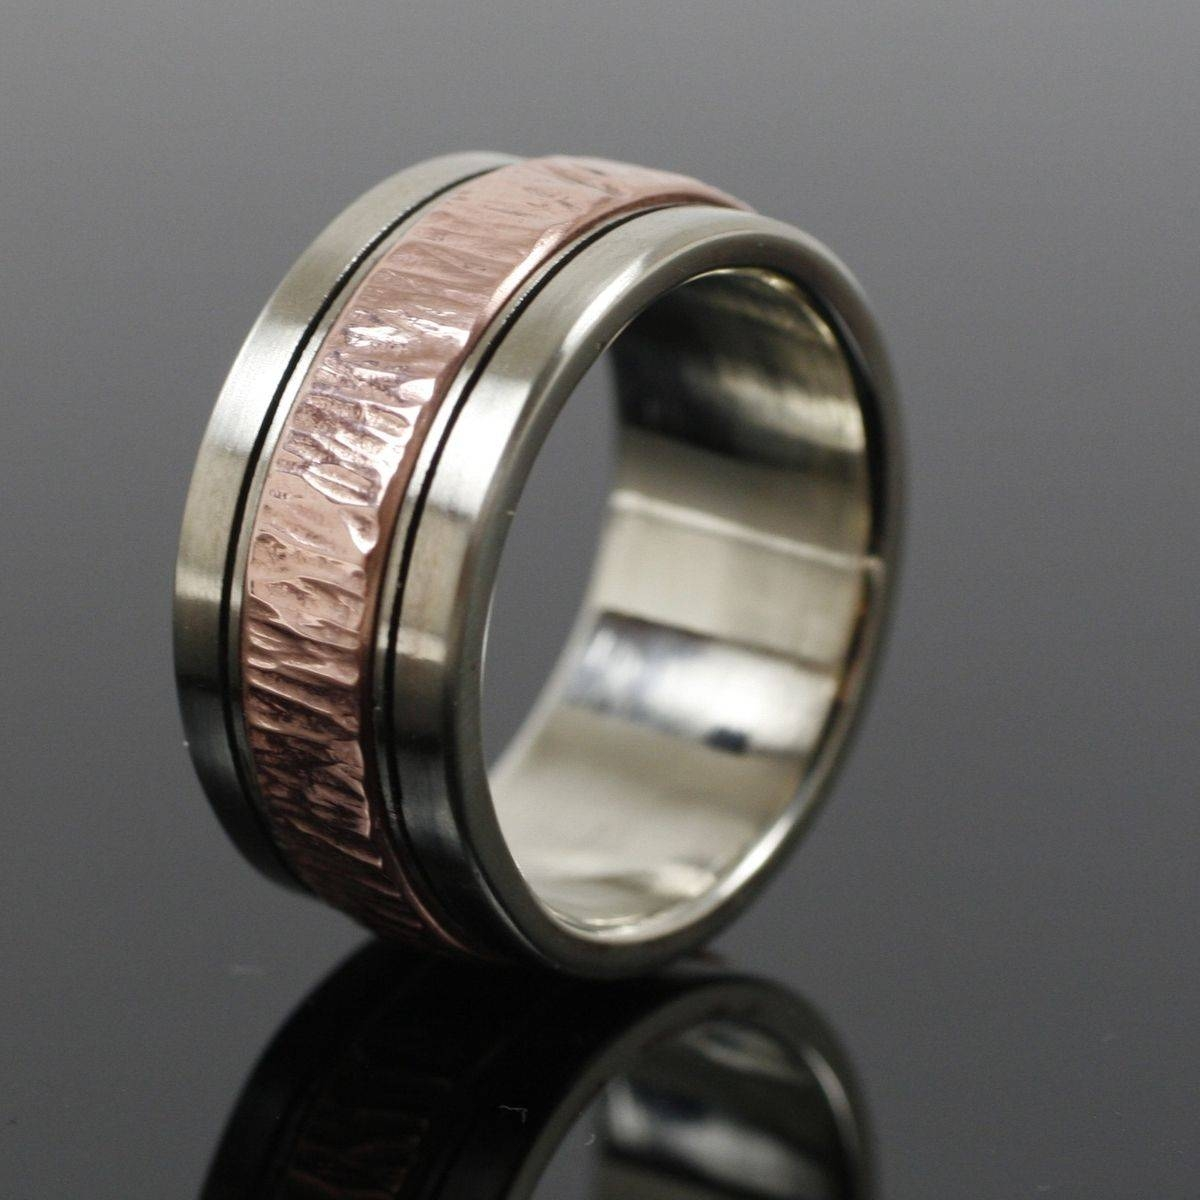 Hand Crafted Mens White Gold And Copper Wedding Bandearth Art Regarding Copper Men's Wedding Bands (View 6 of 15)